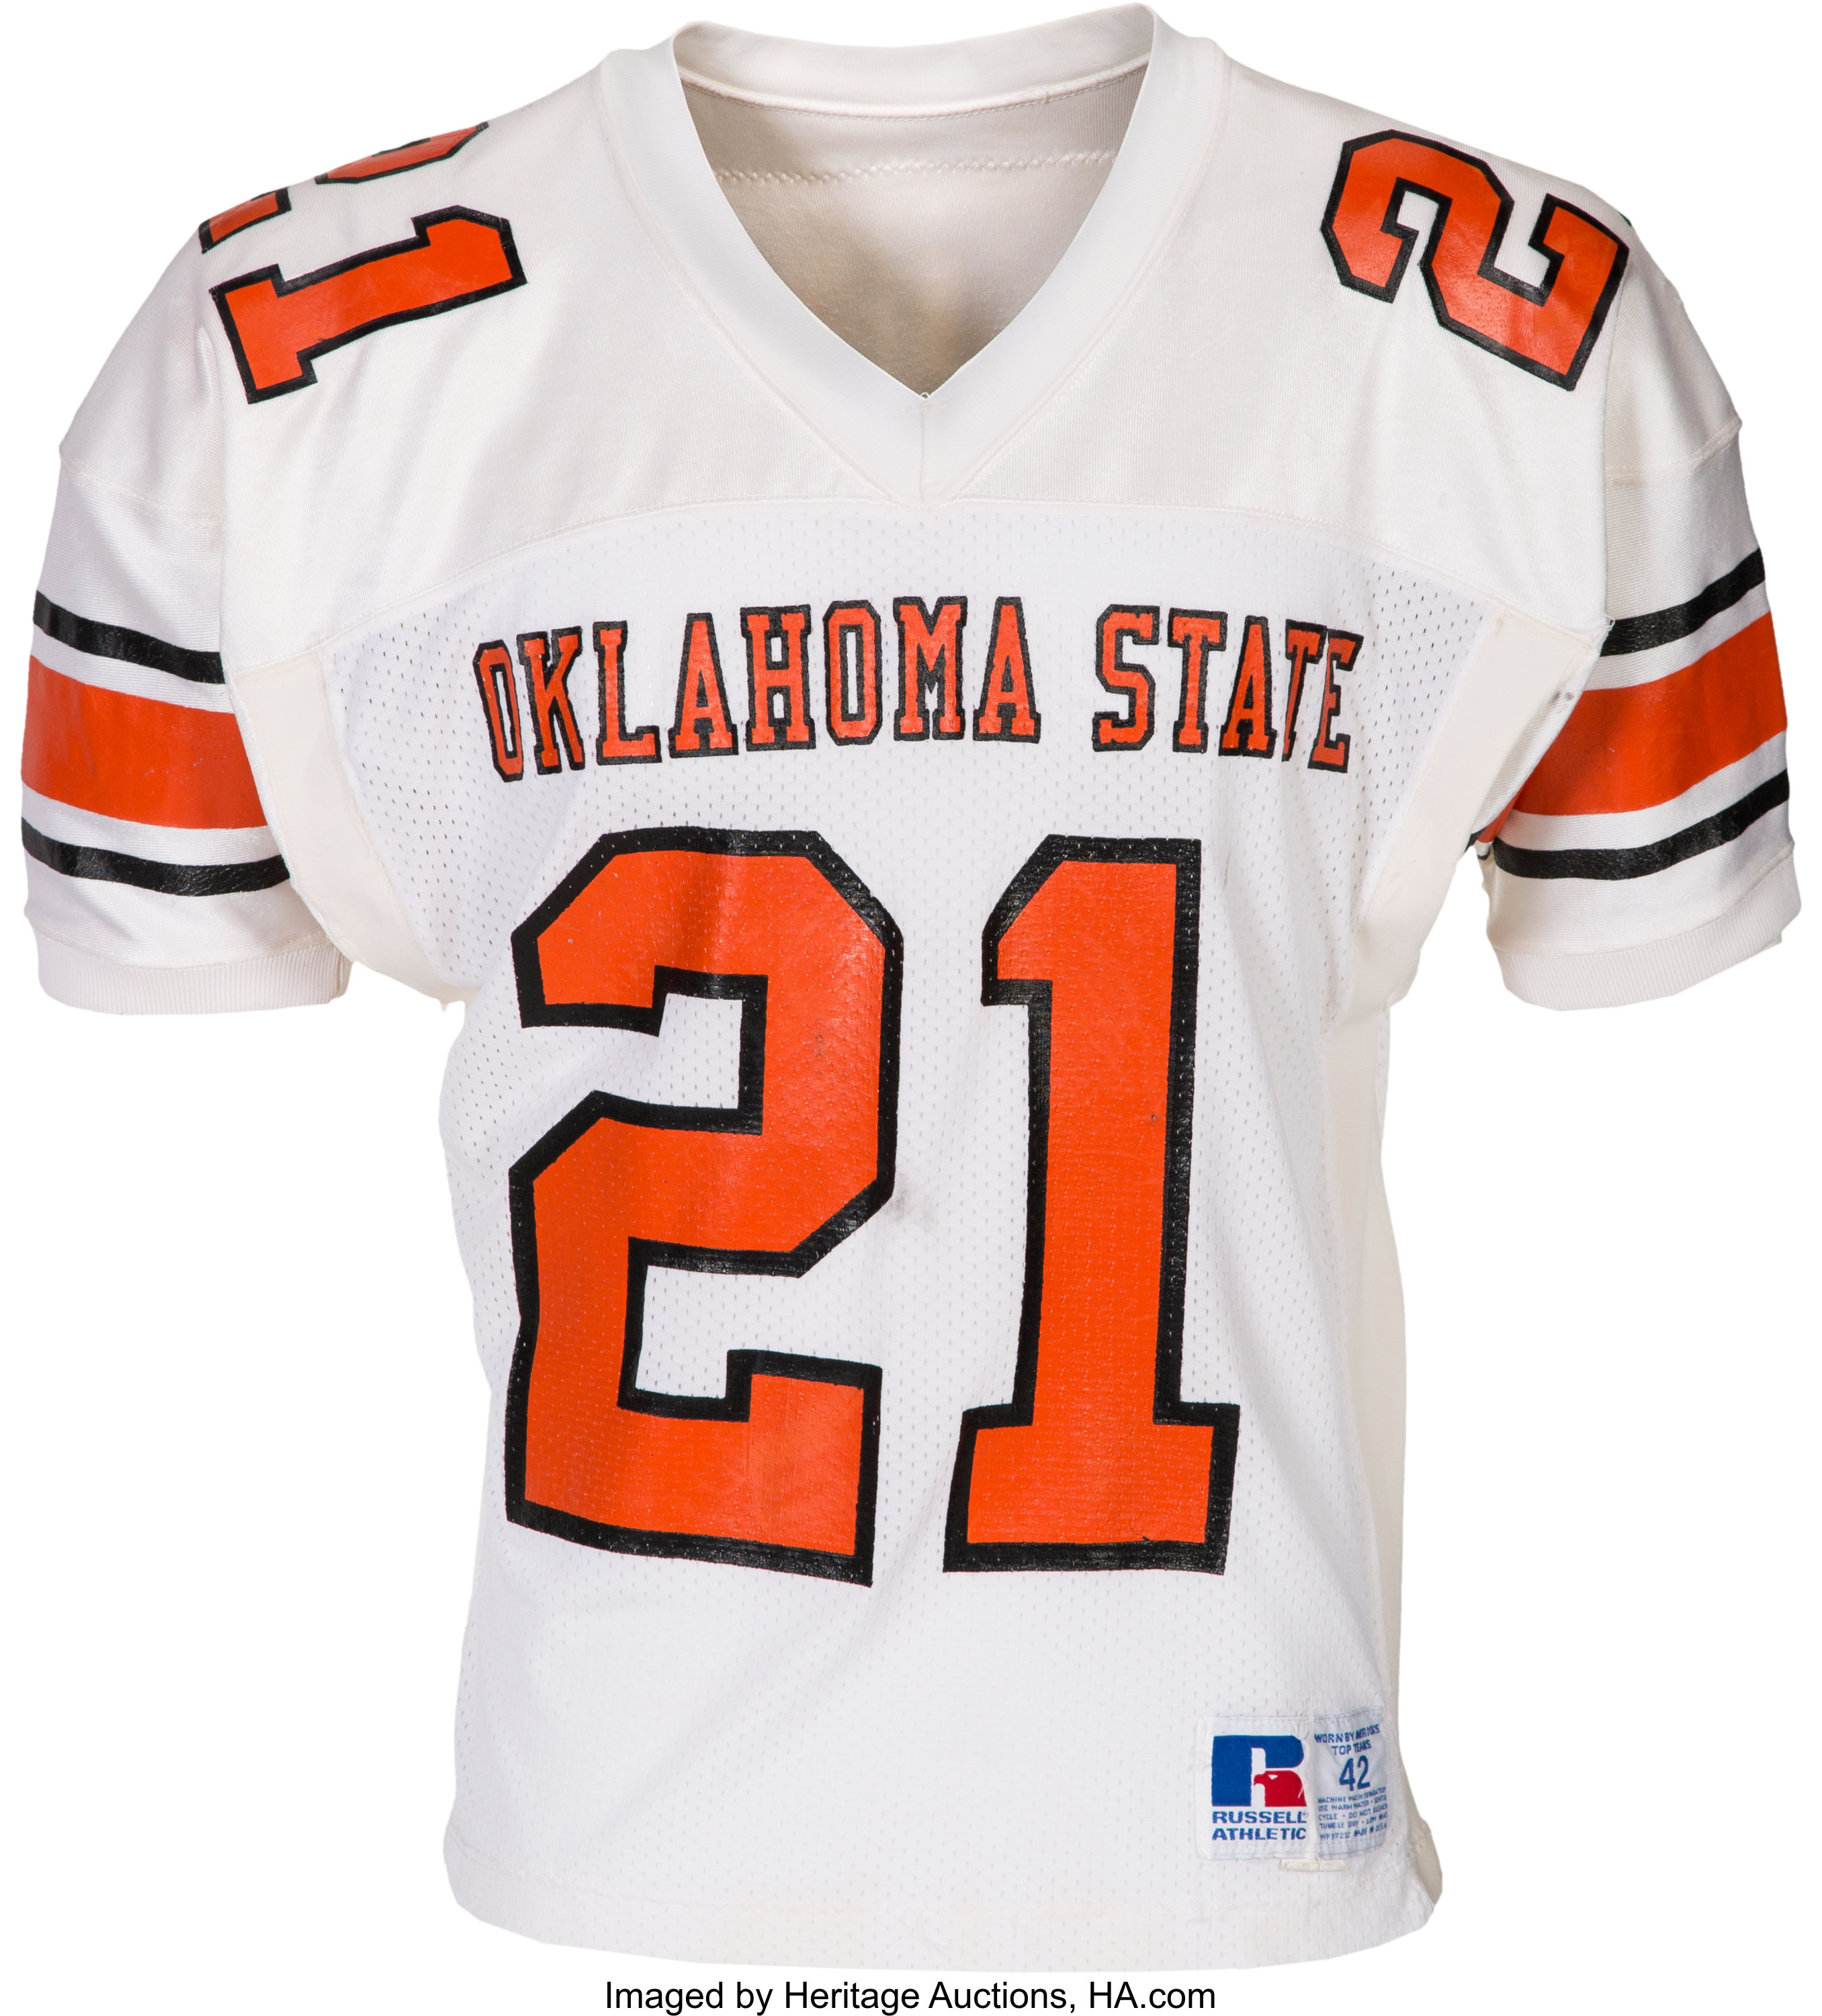 1986 88 Barry Sanders Game Worn Oklahoma State Cowboys Jersey Lot 80101 Heritage Auctions